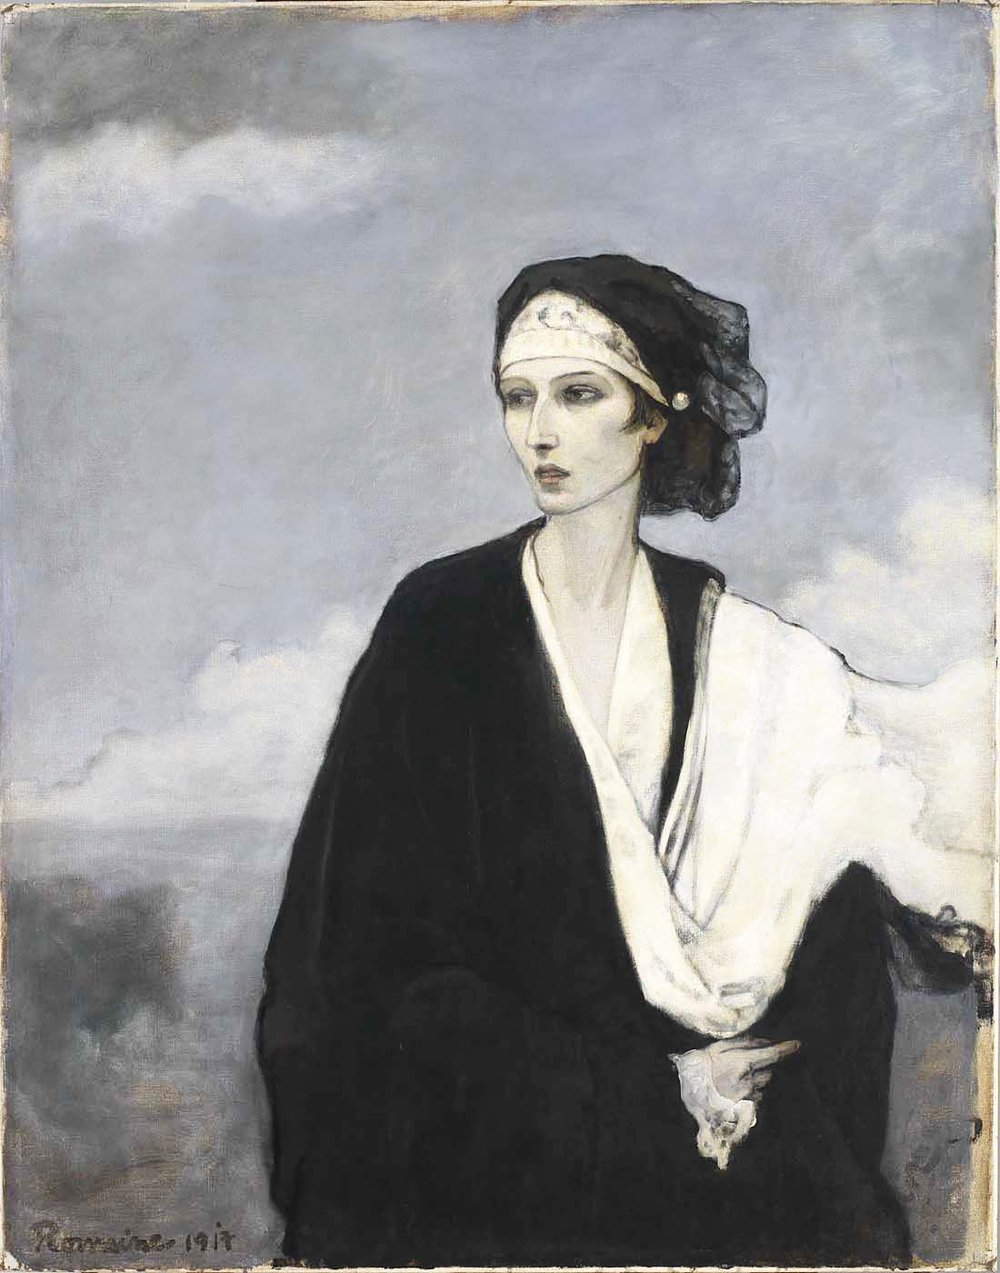 ROMAINE BROOKS,  IDA RUBINSTEIN , 1917, OIL ON CANVAS, COURTESY OF THE SMITHSONIAN AMERICAN ART MUSEUM